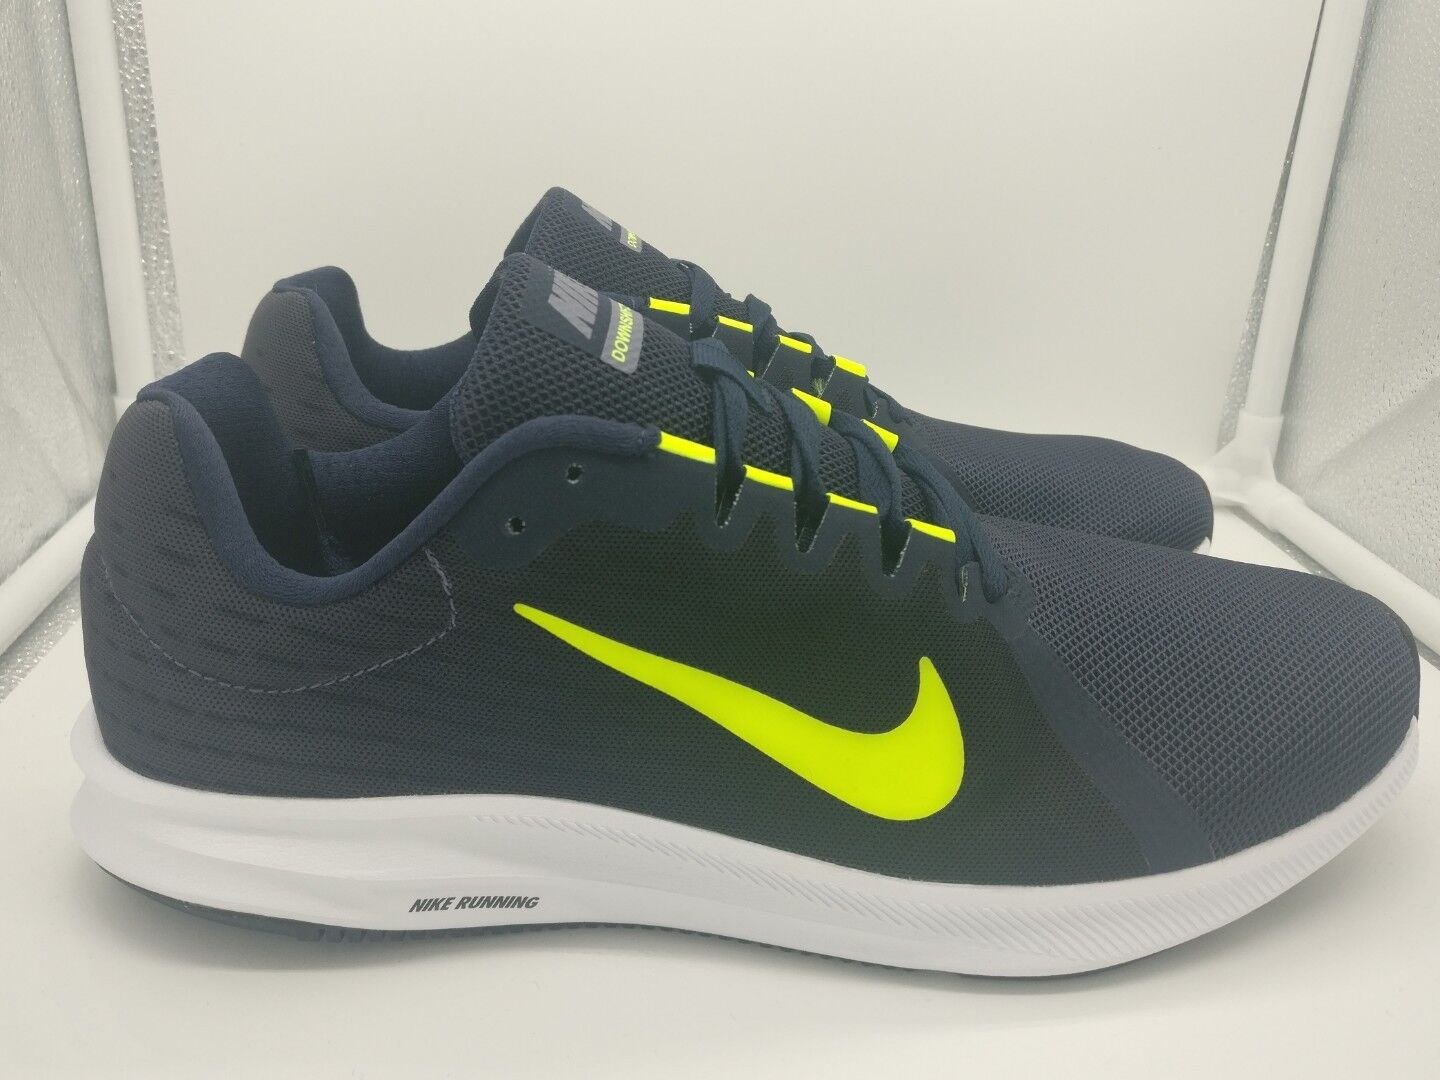 Nike Downshifter 88 Light Carbon Volt Obsidian 908984007